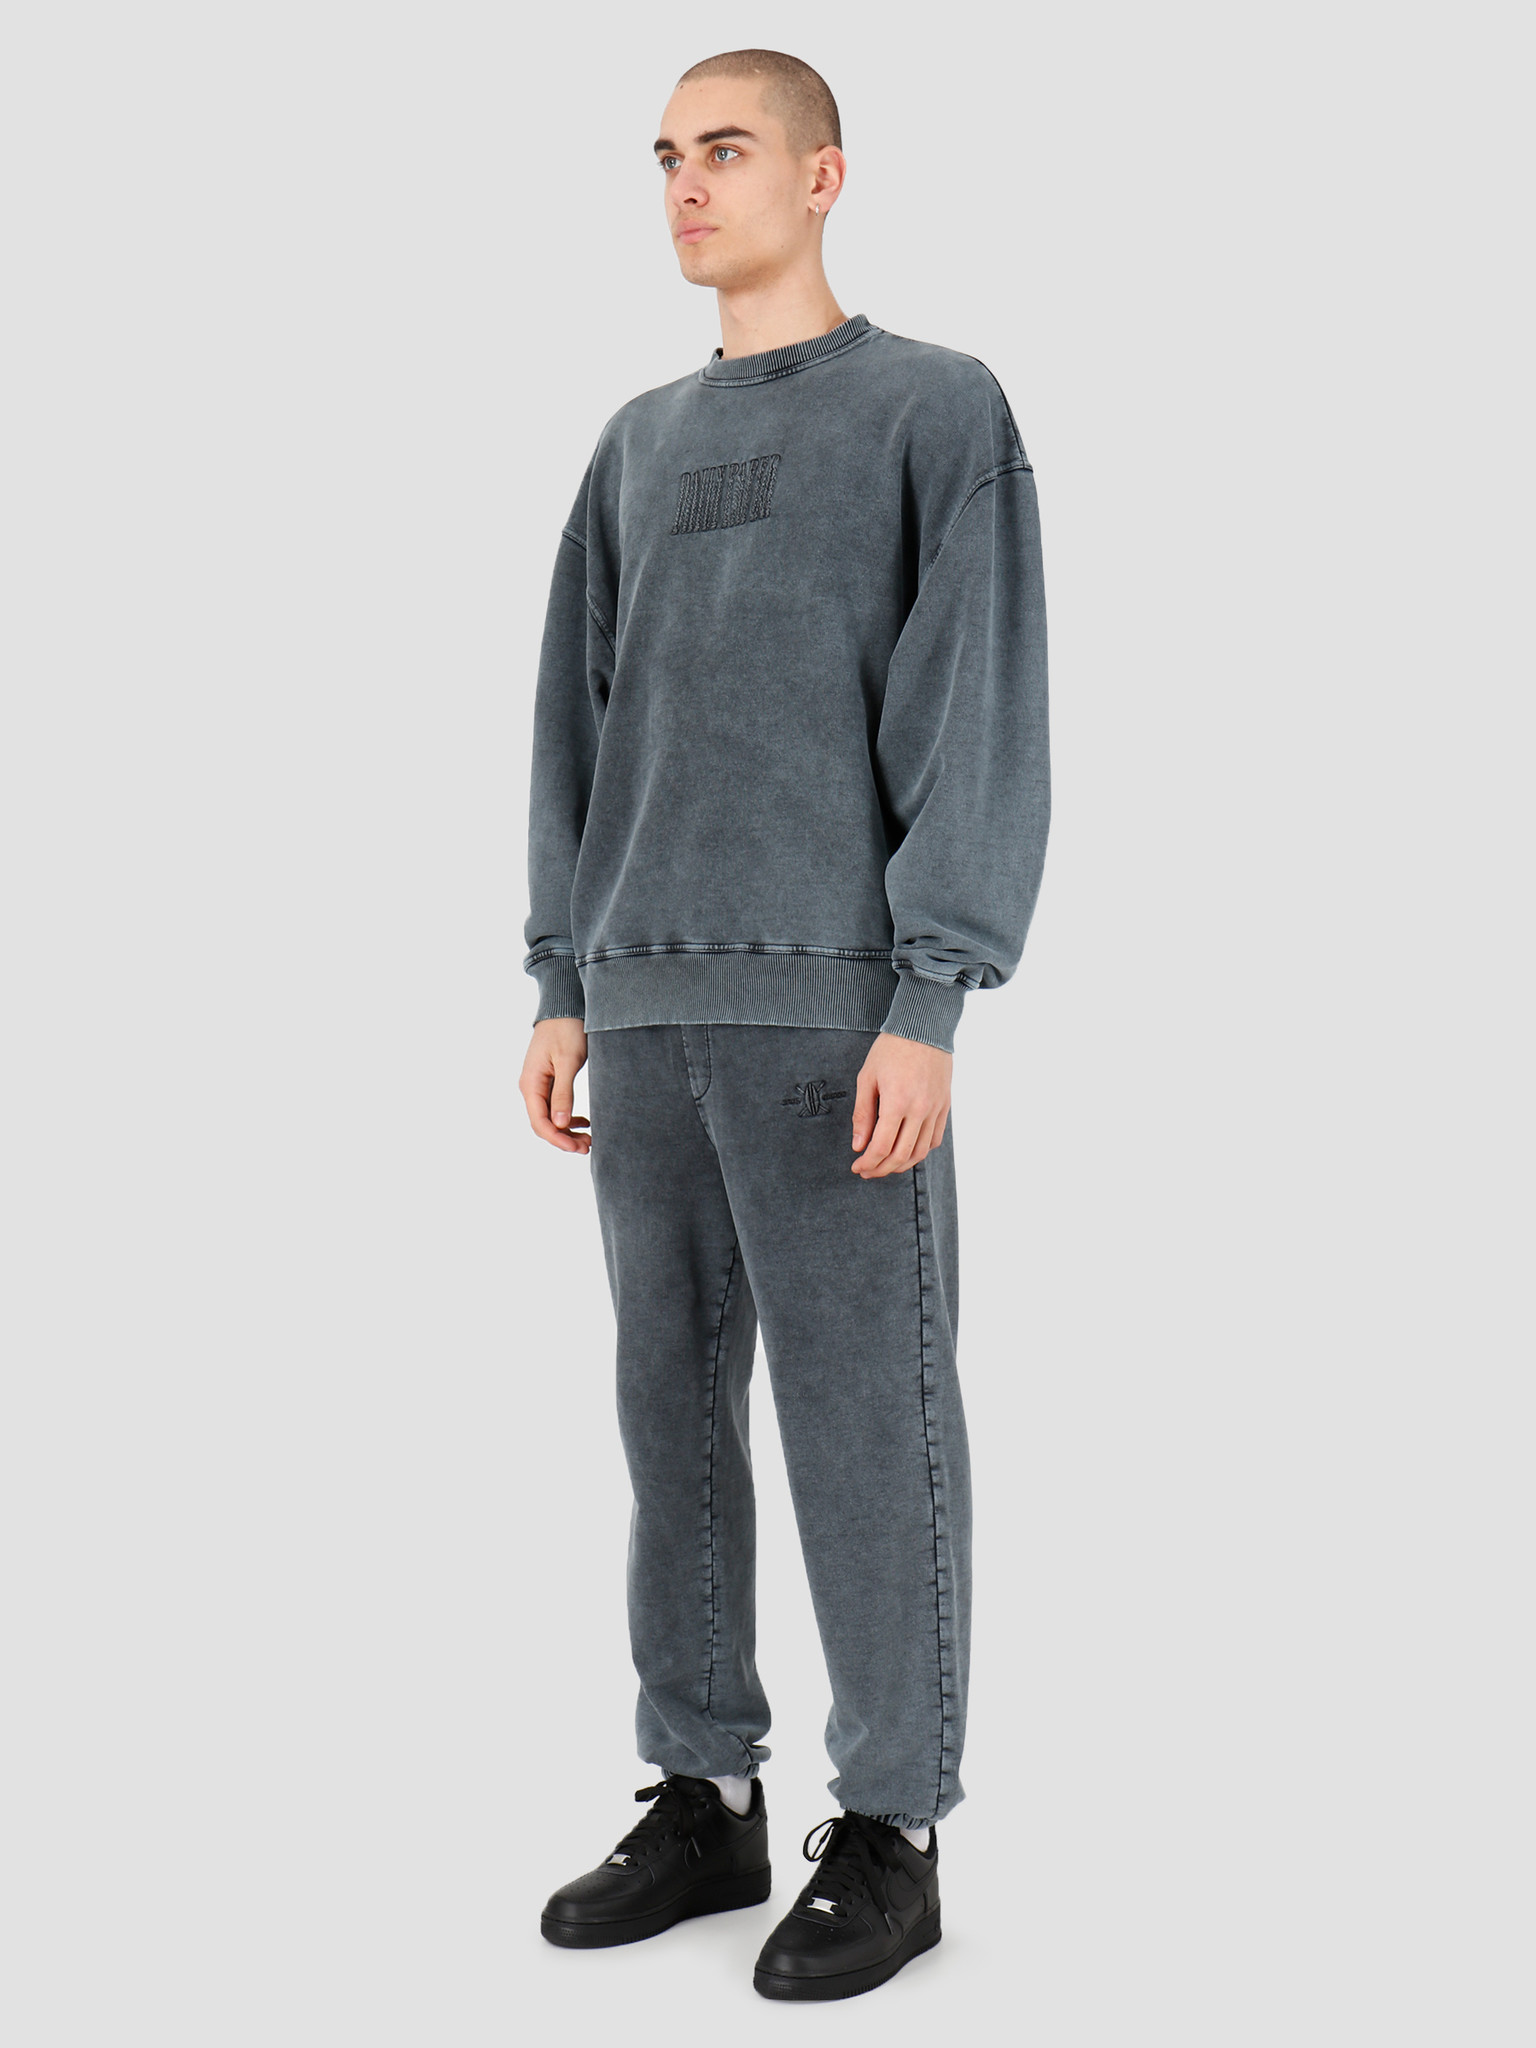 Daily Paper Daily Paper Heracid Sweater Black 20S1SW03-04